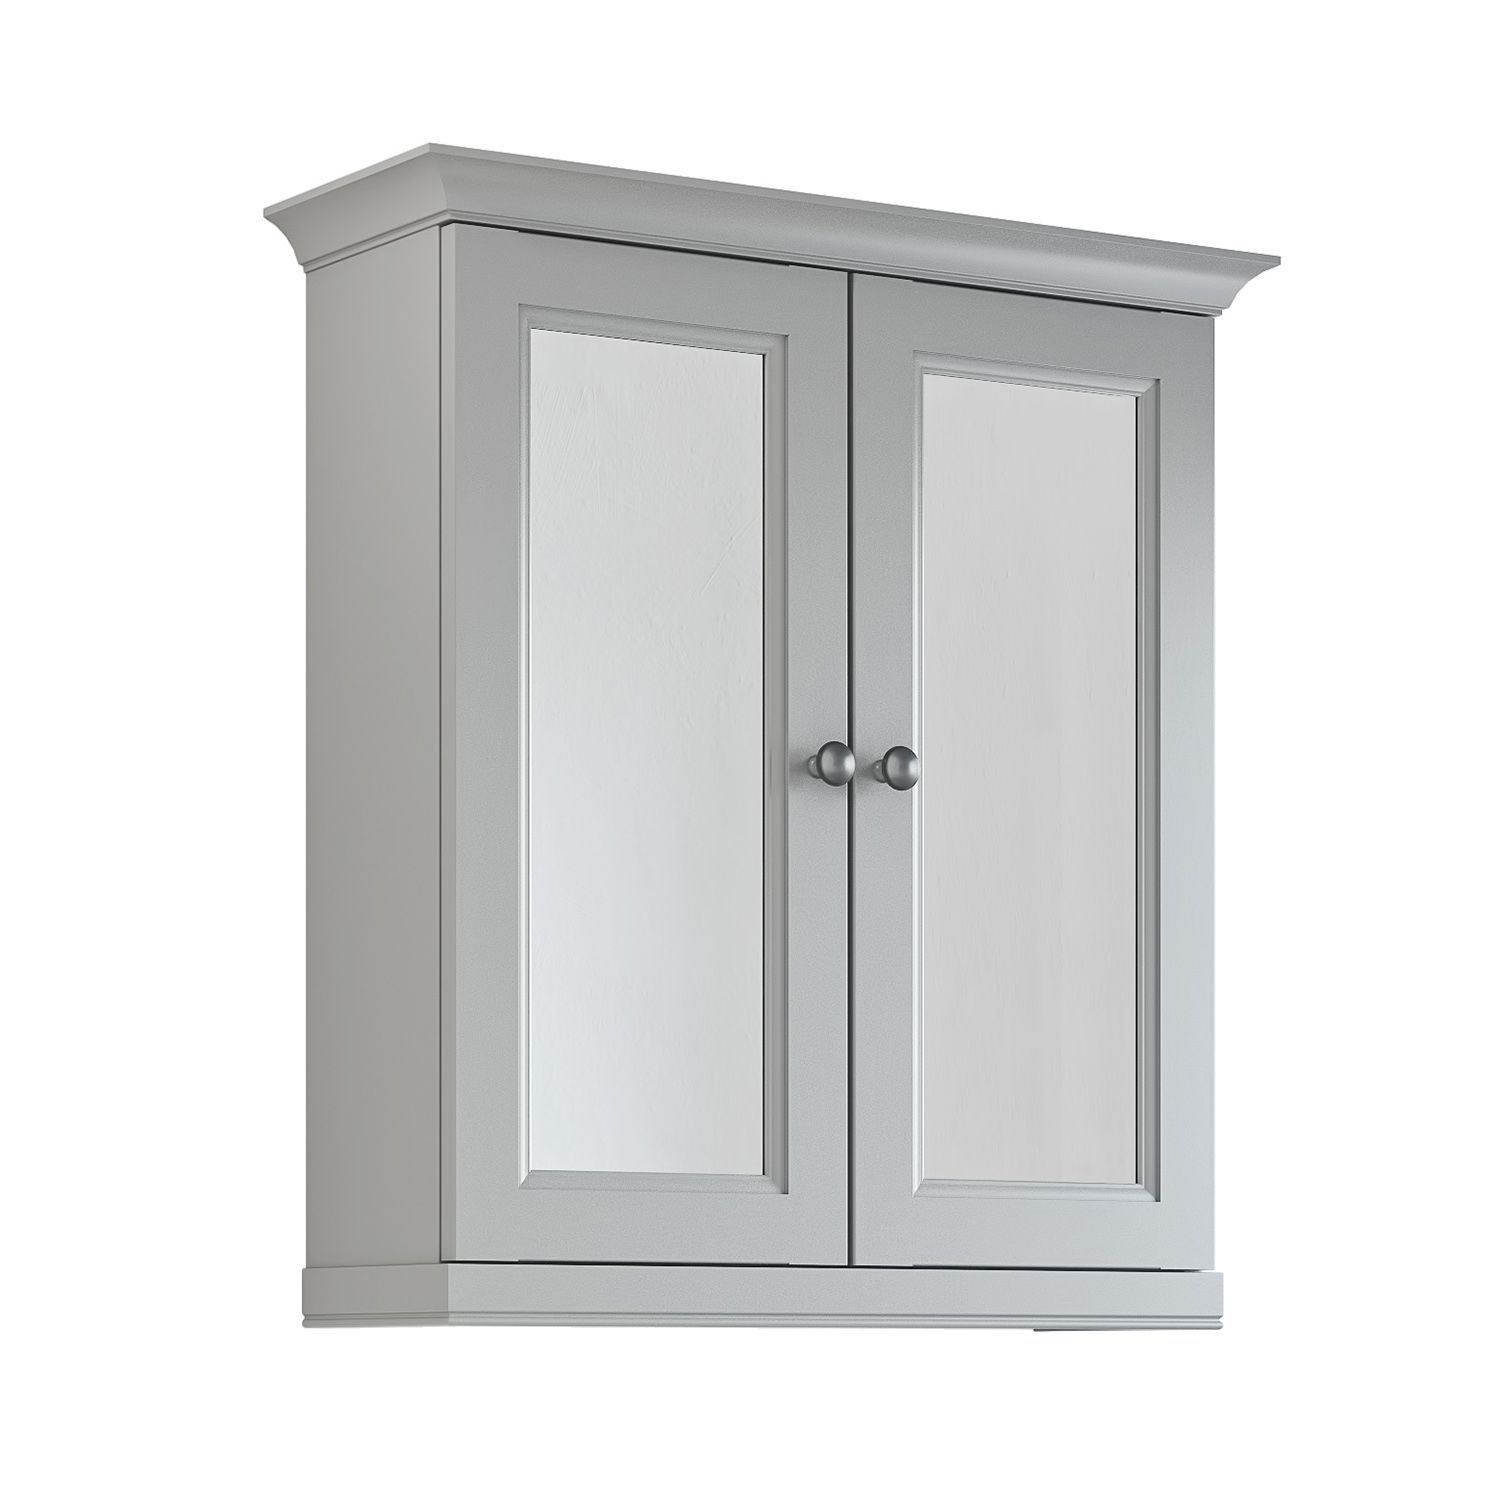 cooke lewis chadleigh double door light grey matt mirror cabinet bq for all your home and garden supplies and advice on all the latest diy trends